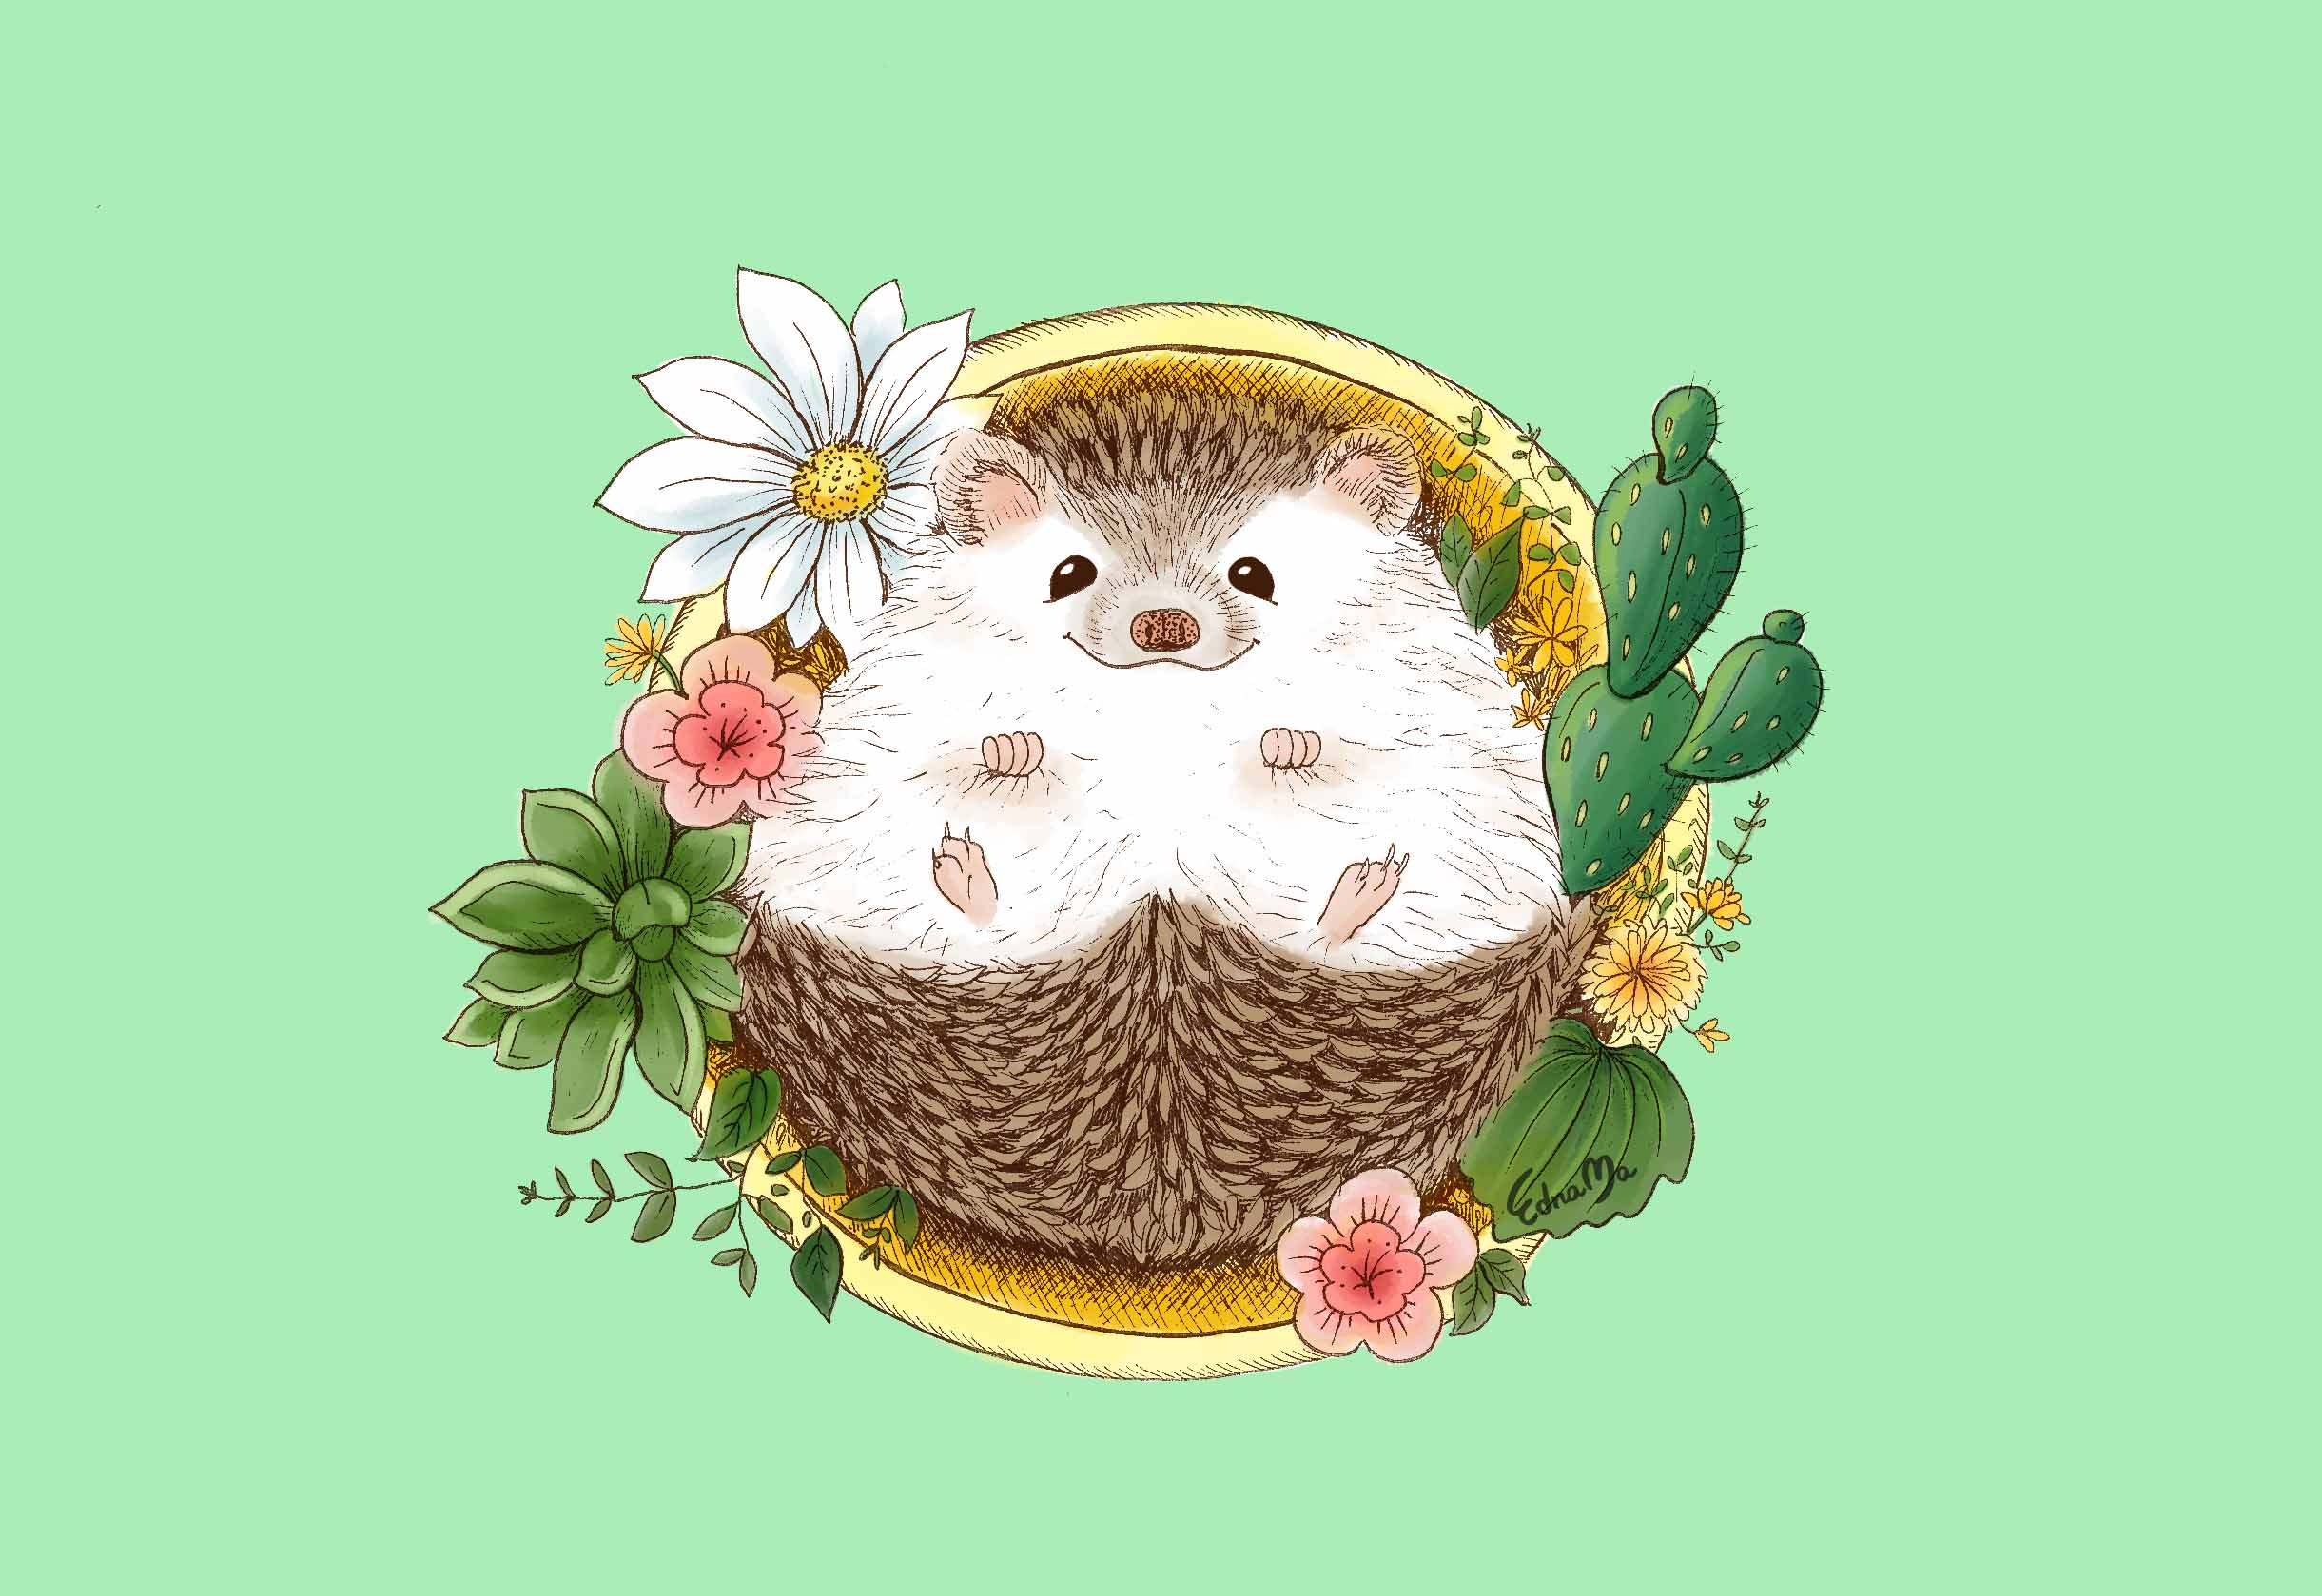 hedgehog with cactus8.jpg